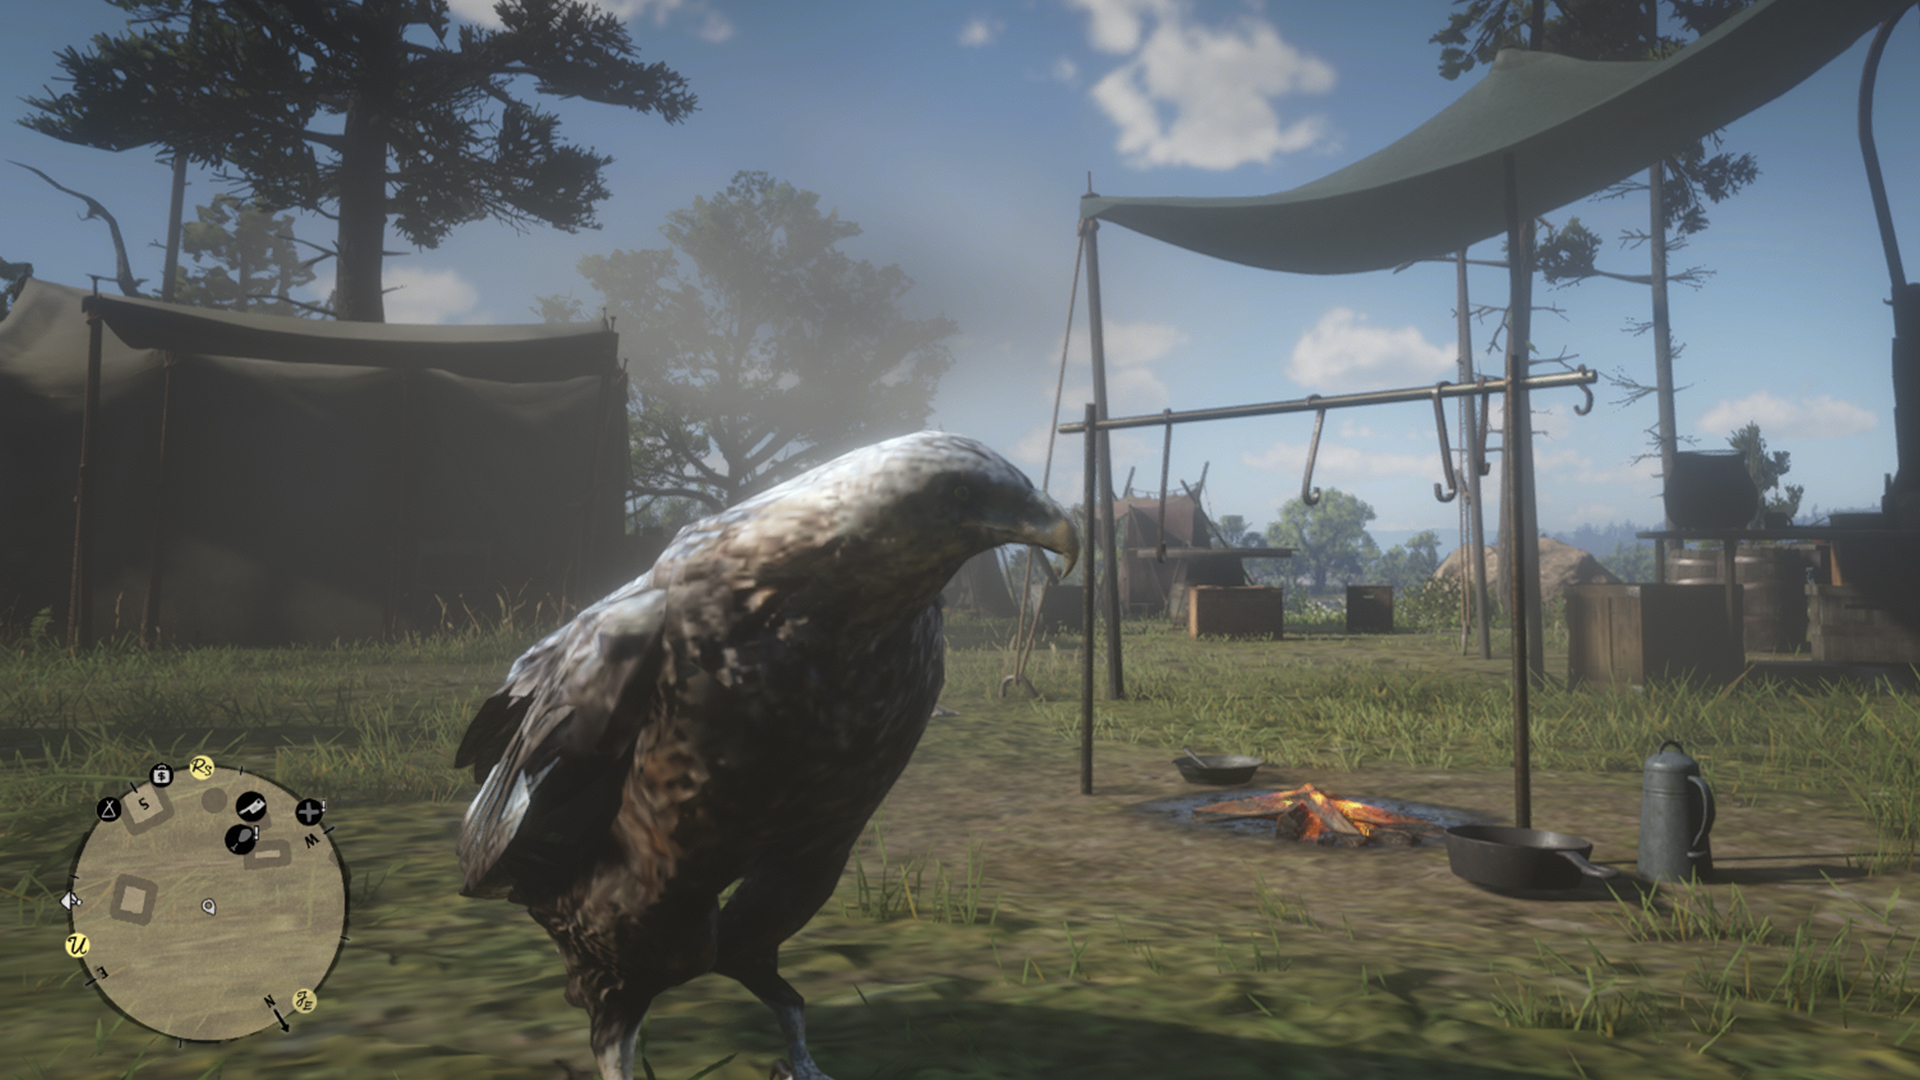 These Red Dead Redemption 2 mods let you play as animals